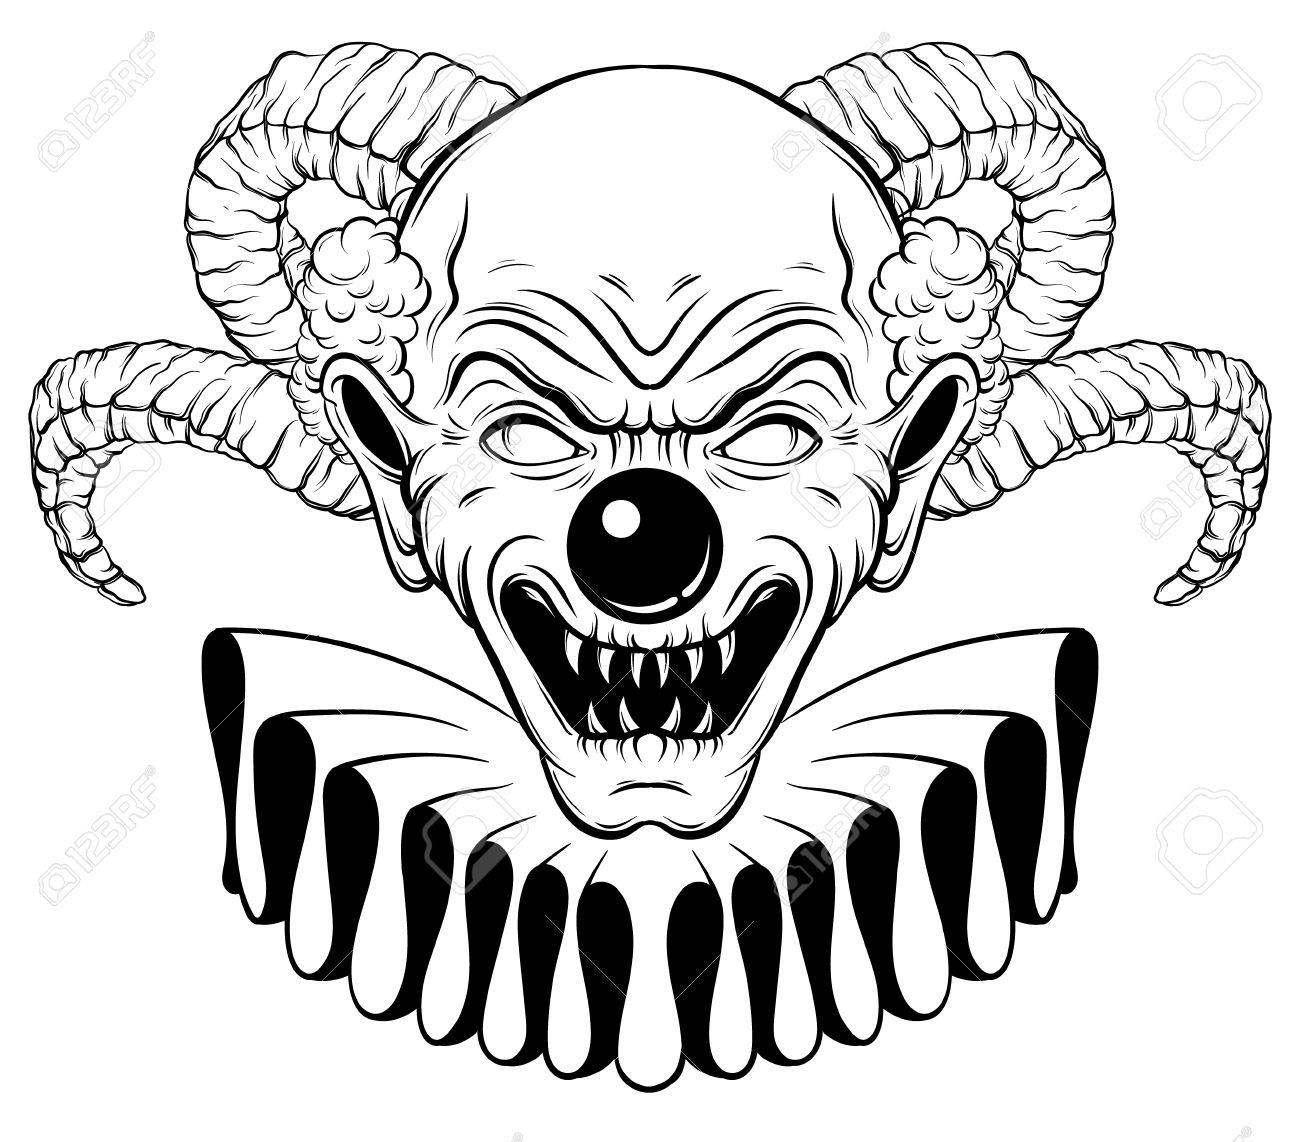 vector hand drawn illustration of angry clown with horns tattoo